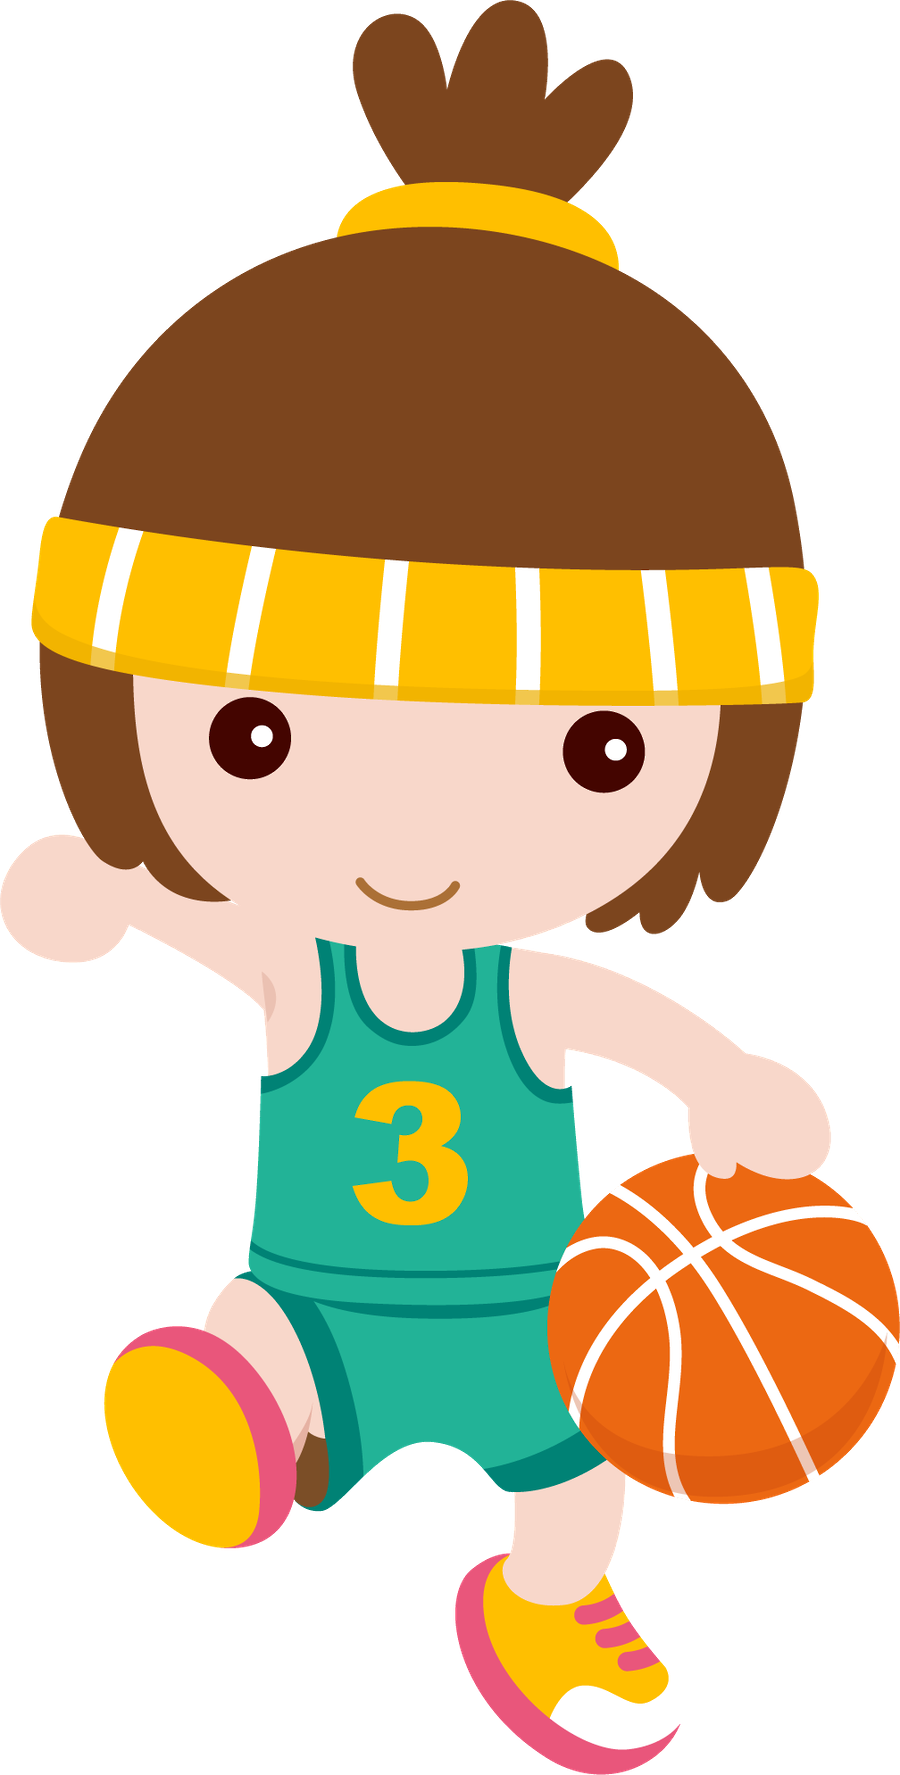 Race clipart athletic meet. Basquete minus alreadyclipart sports